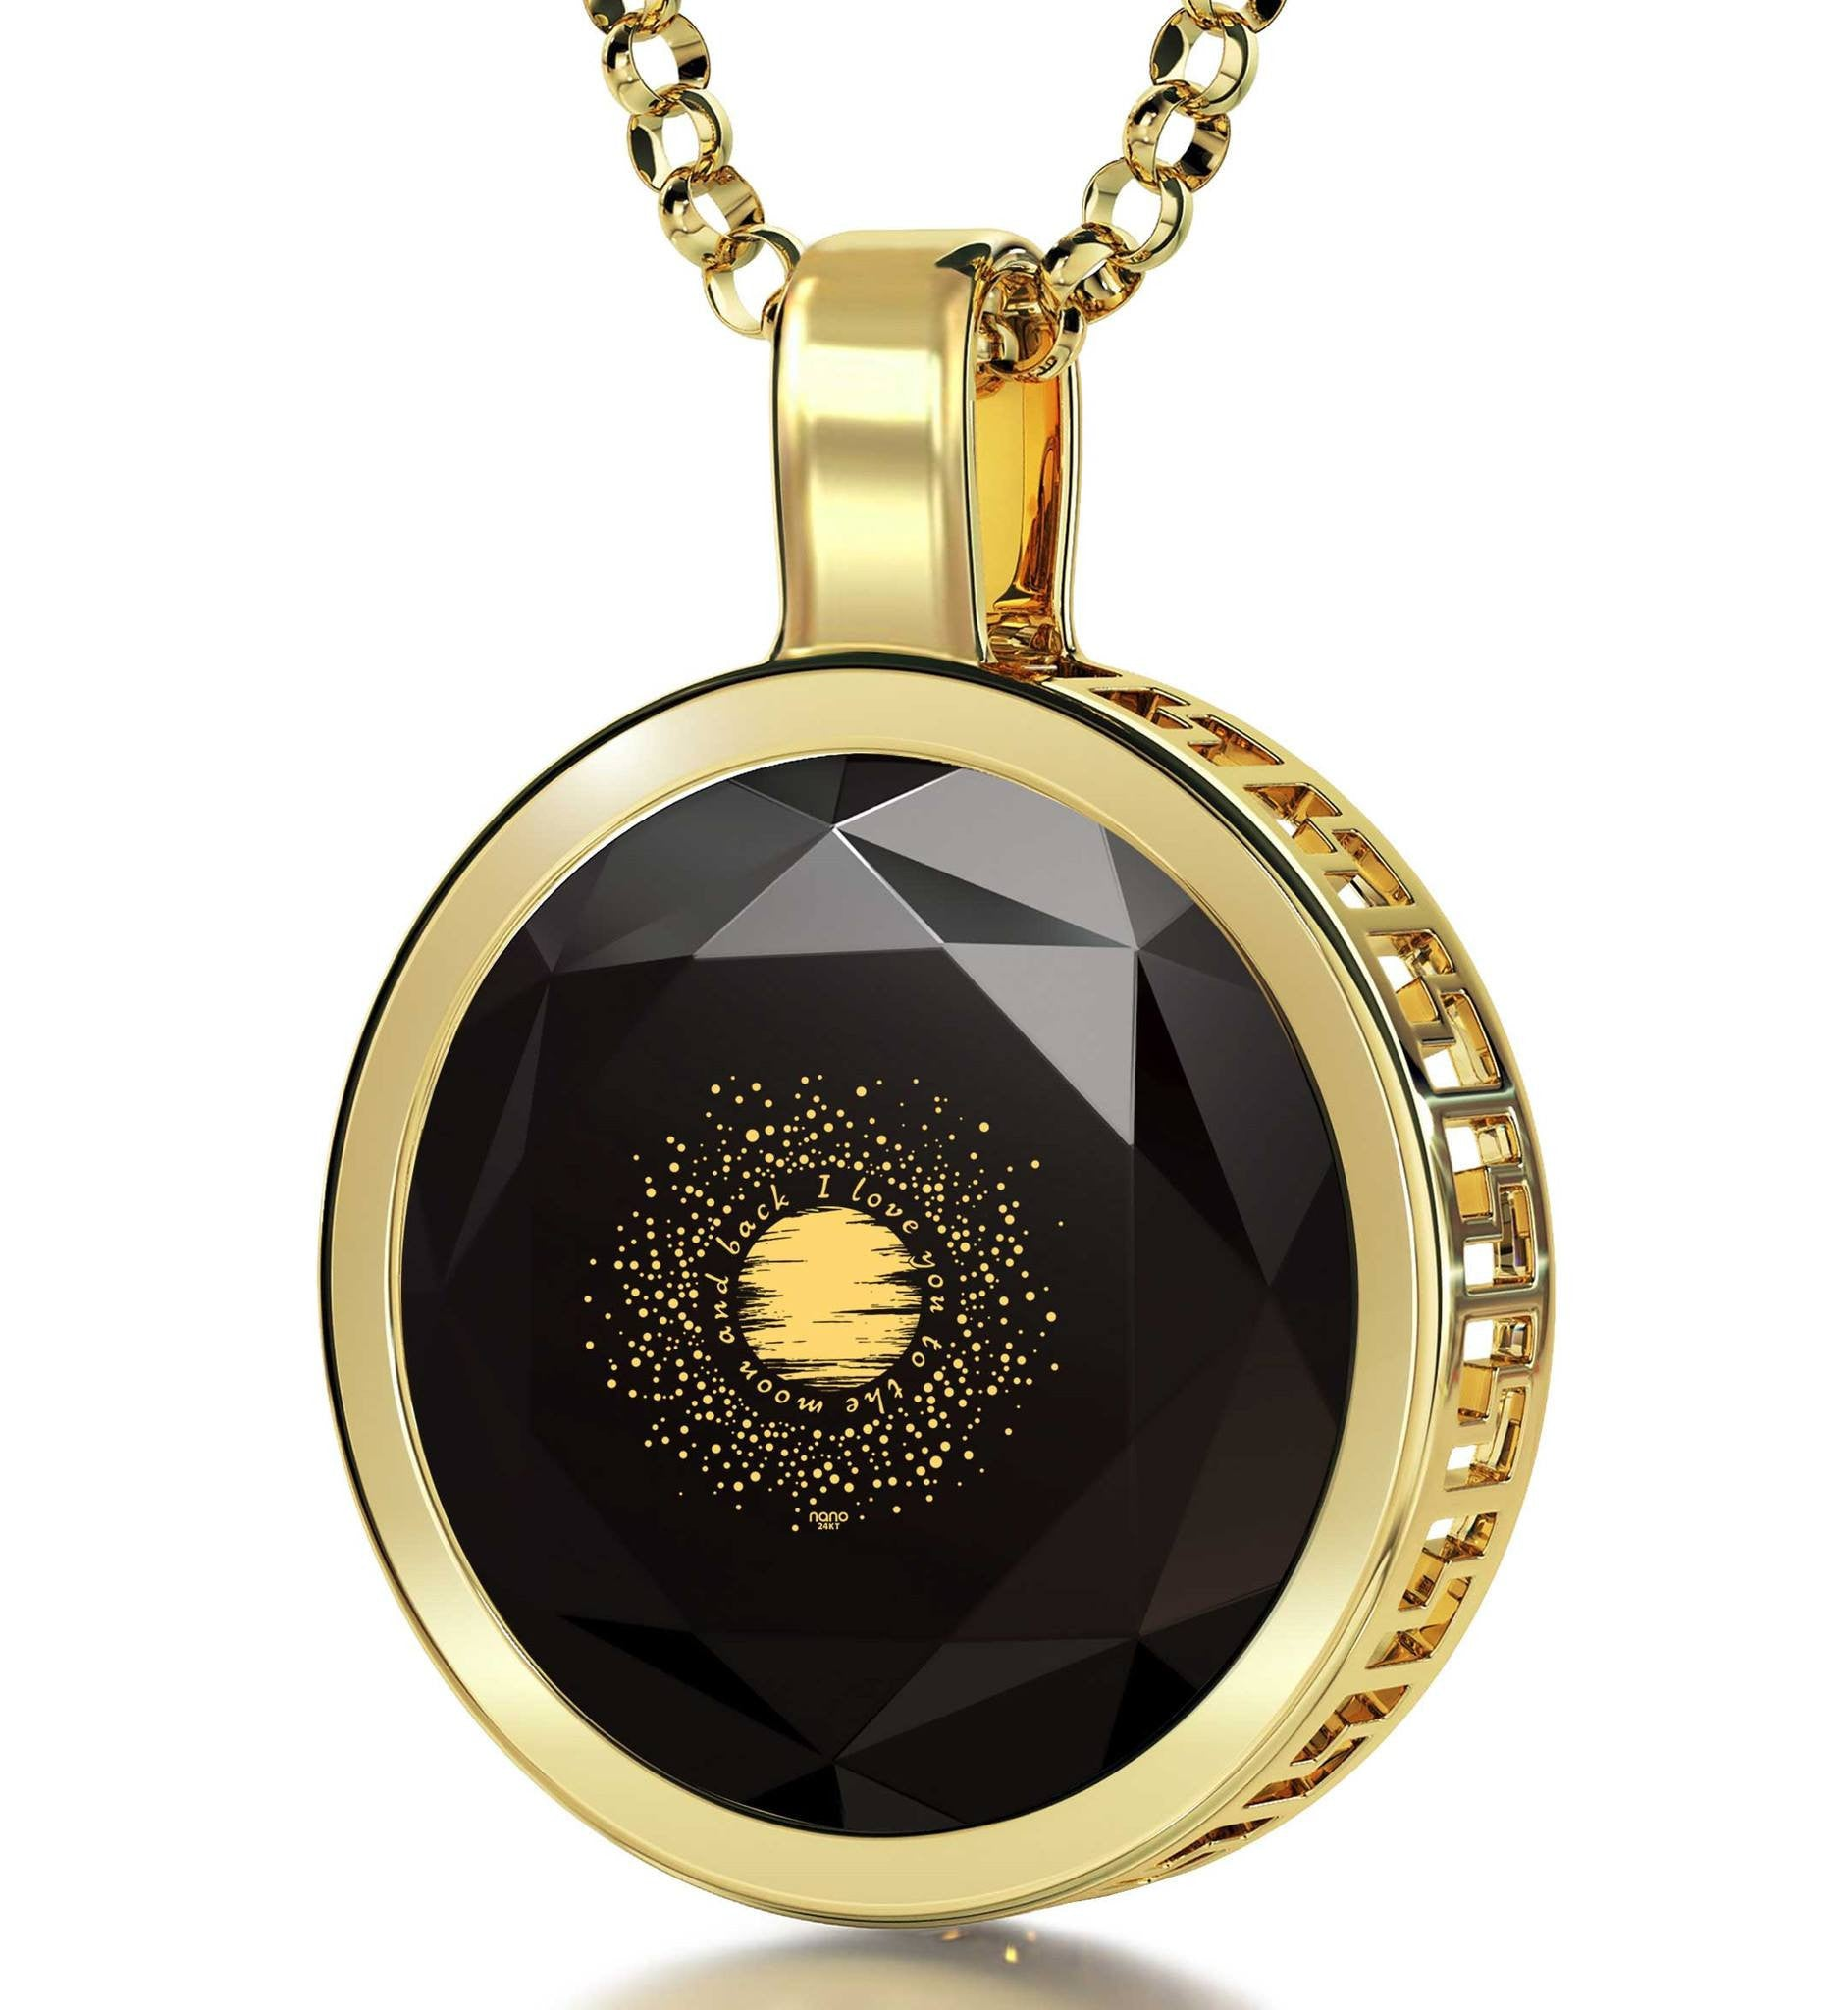 """Necklaces for Your Girlfriend, CZJewellery, 24k Engraved Pendant,Top Gifts for Women, Nano """